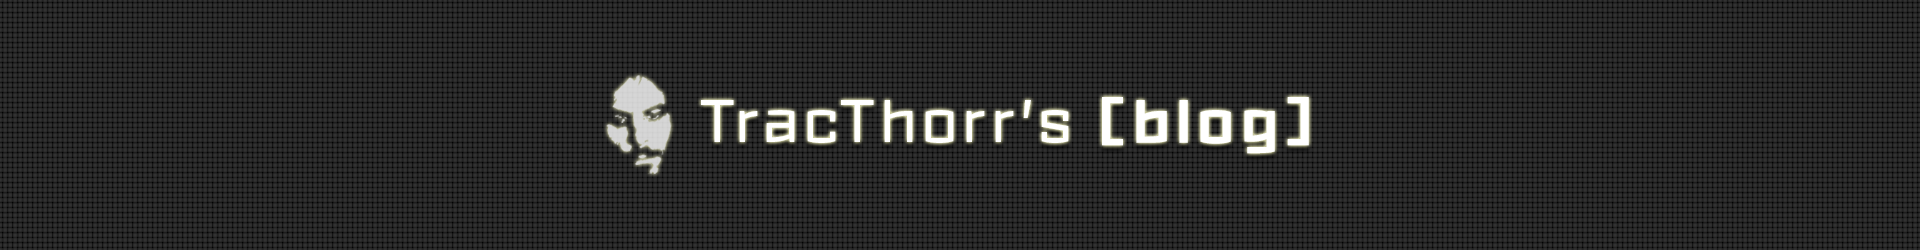 TracThorr's [blog]